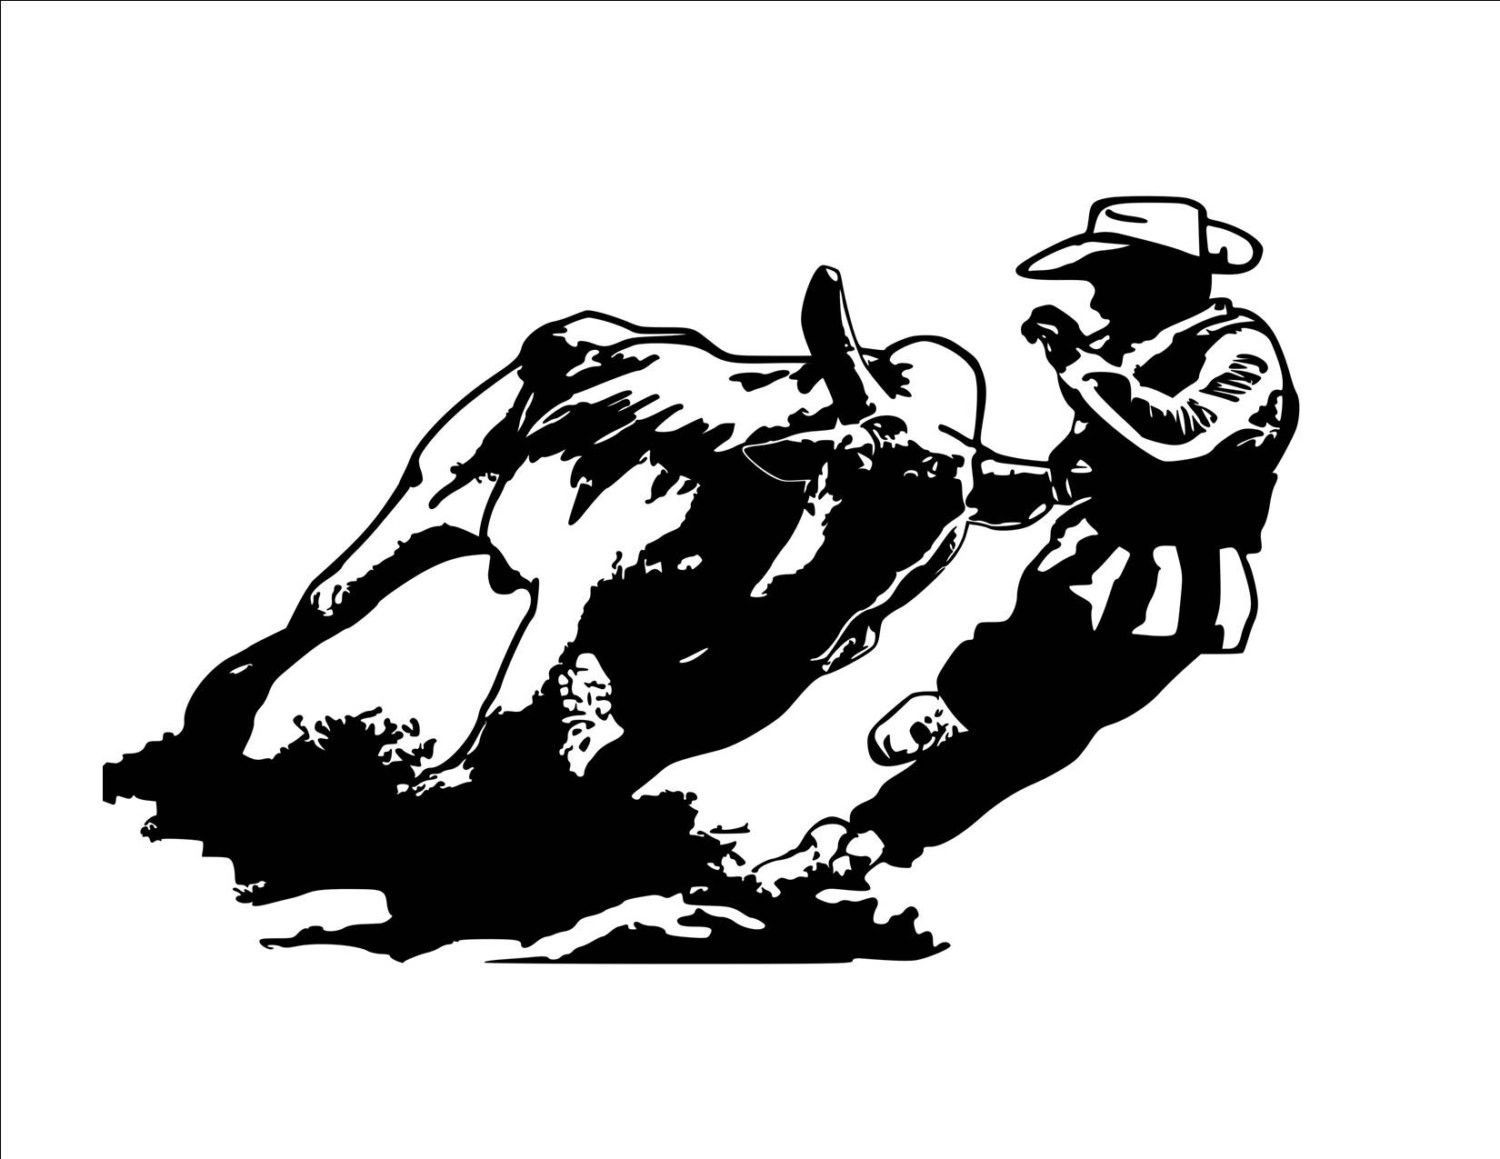 Horse Rodeo Bull Fighter Wall Decal Rodeo Sticker 36